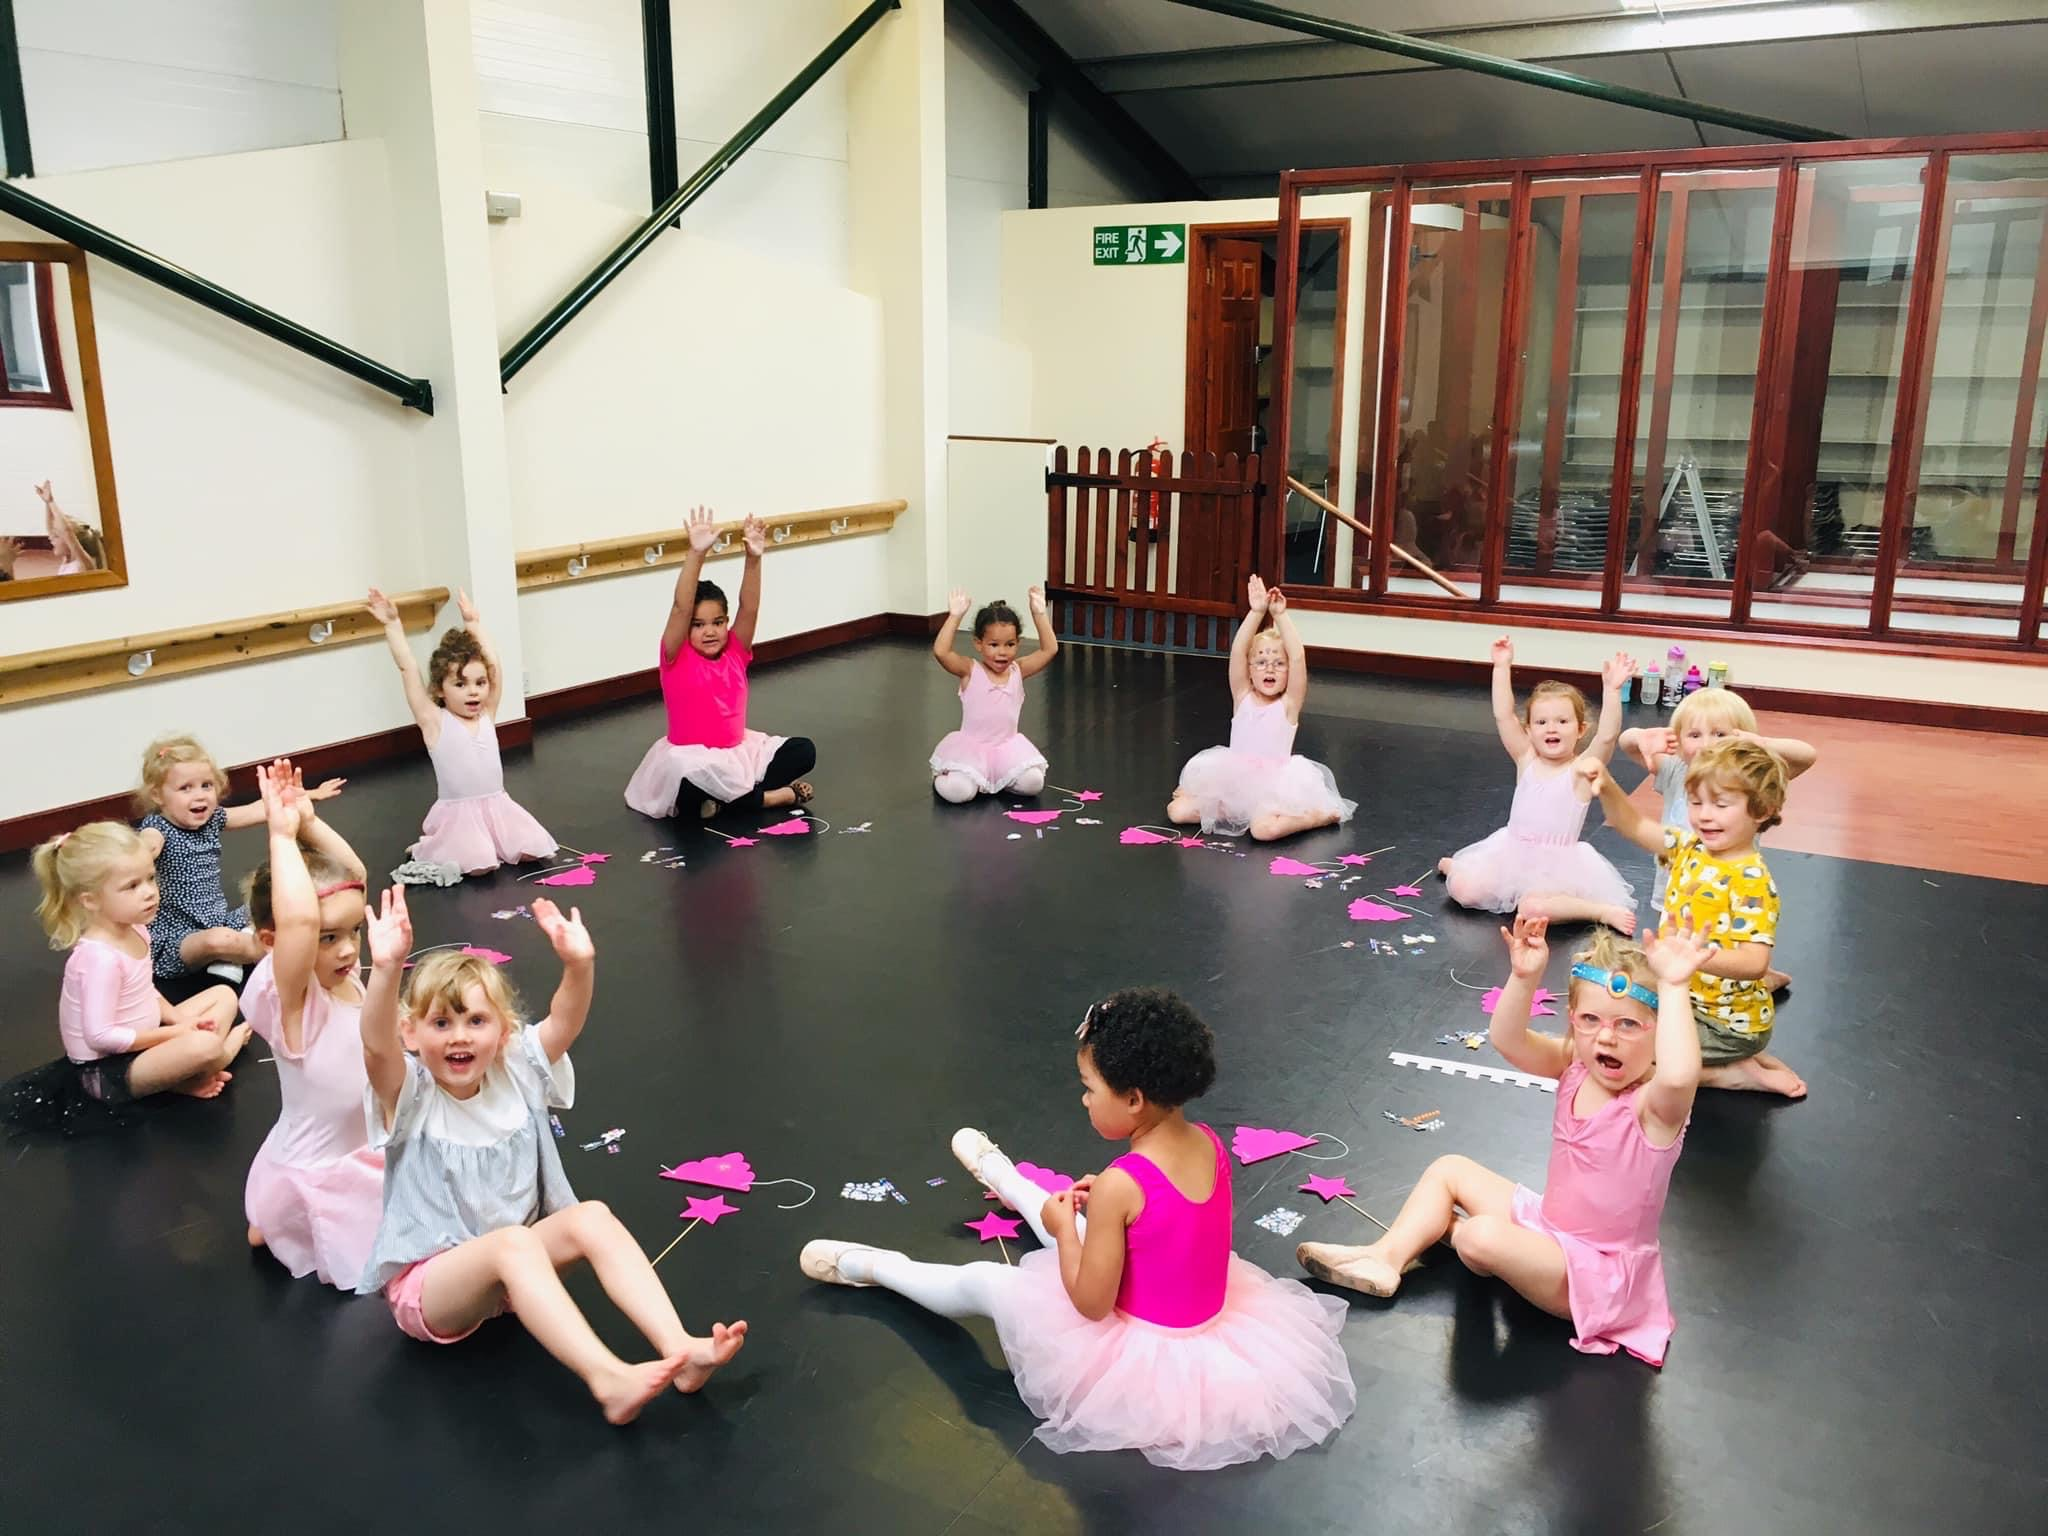 ballet class, large circle hands raised